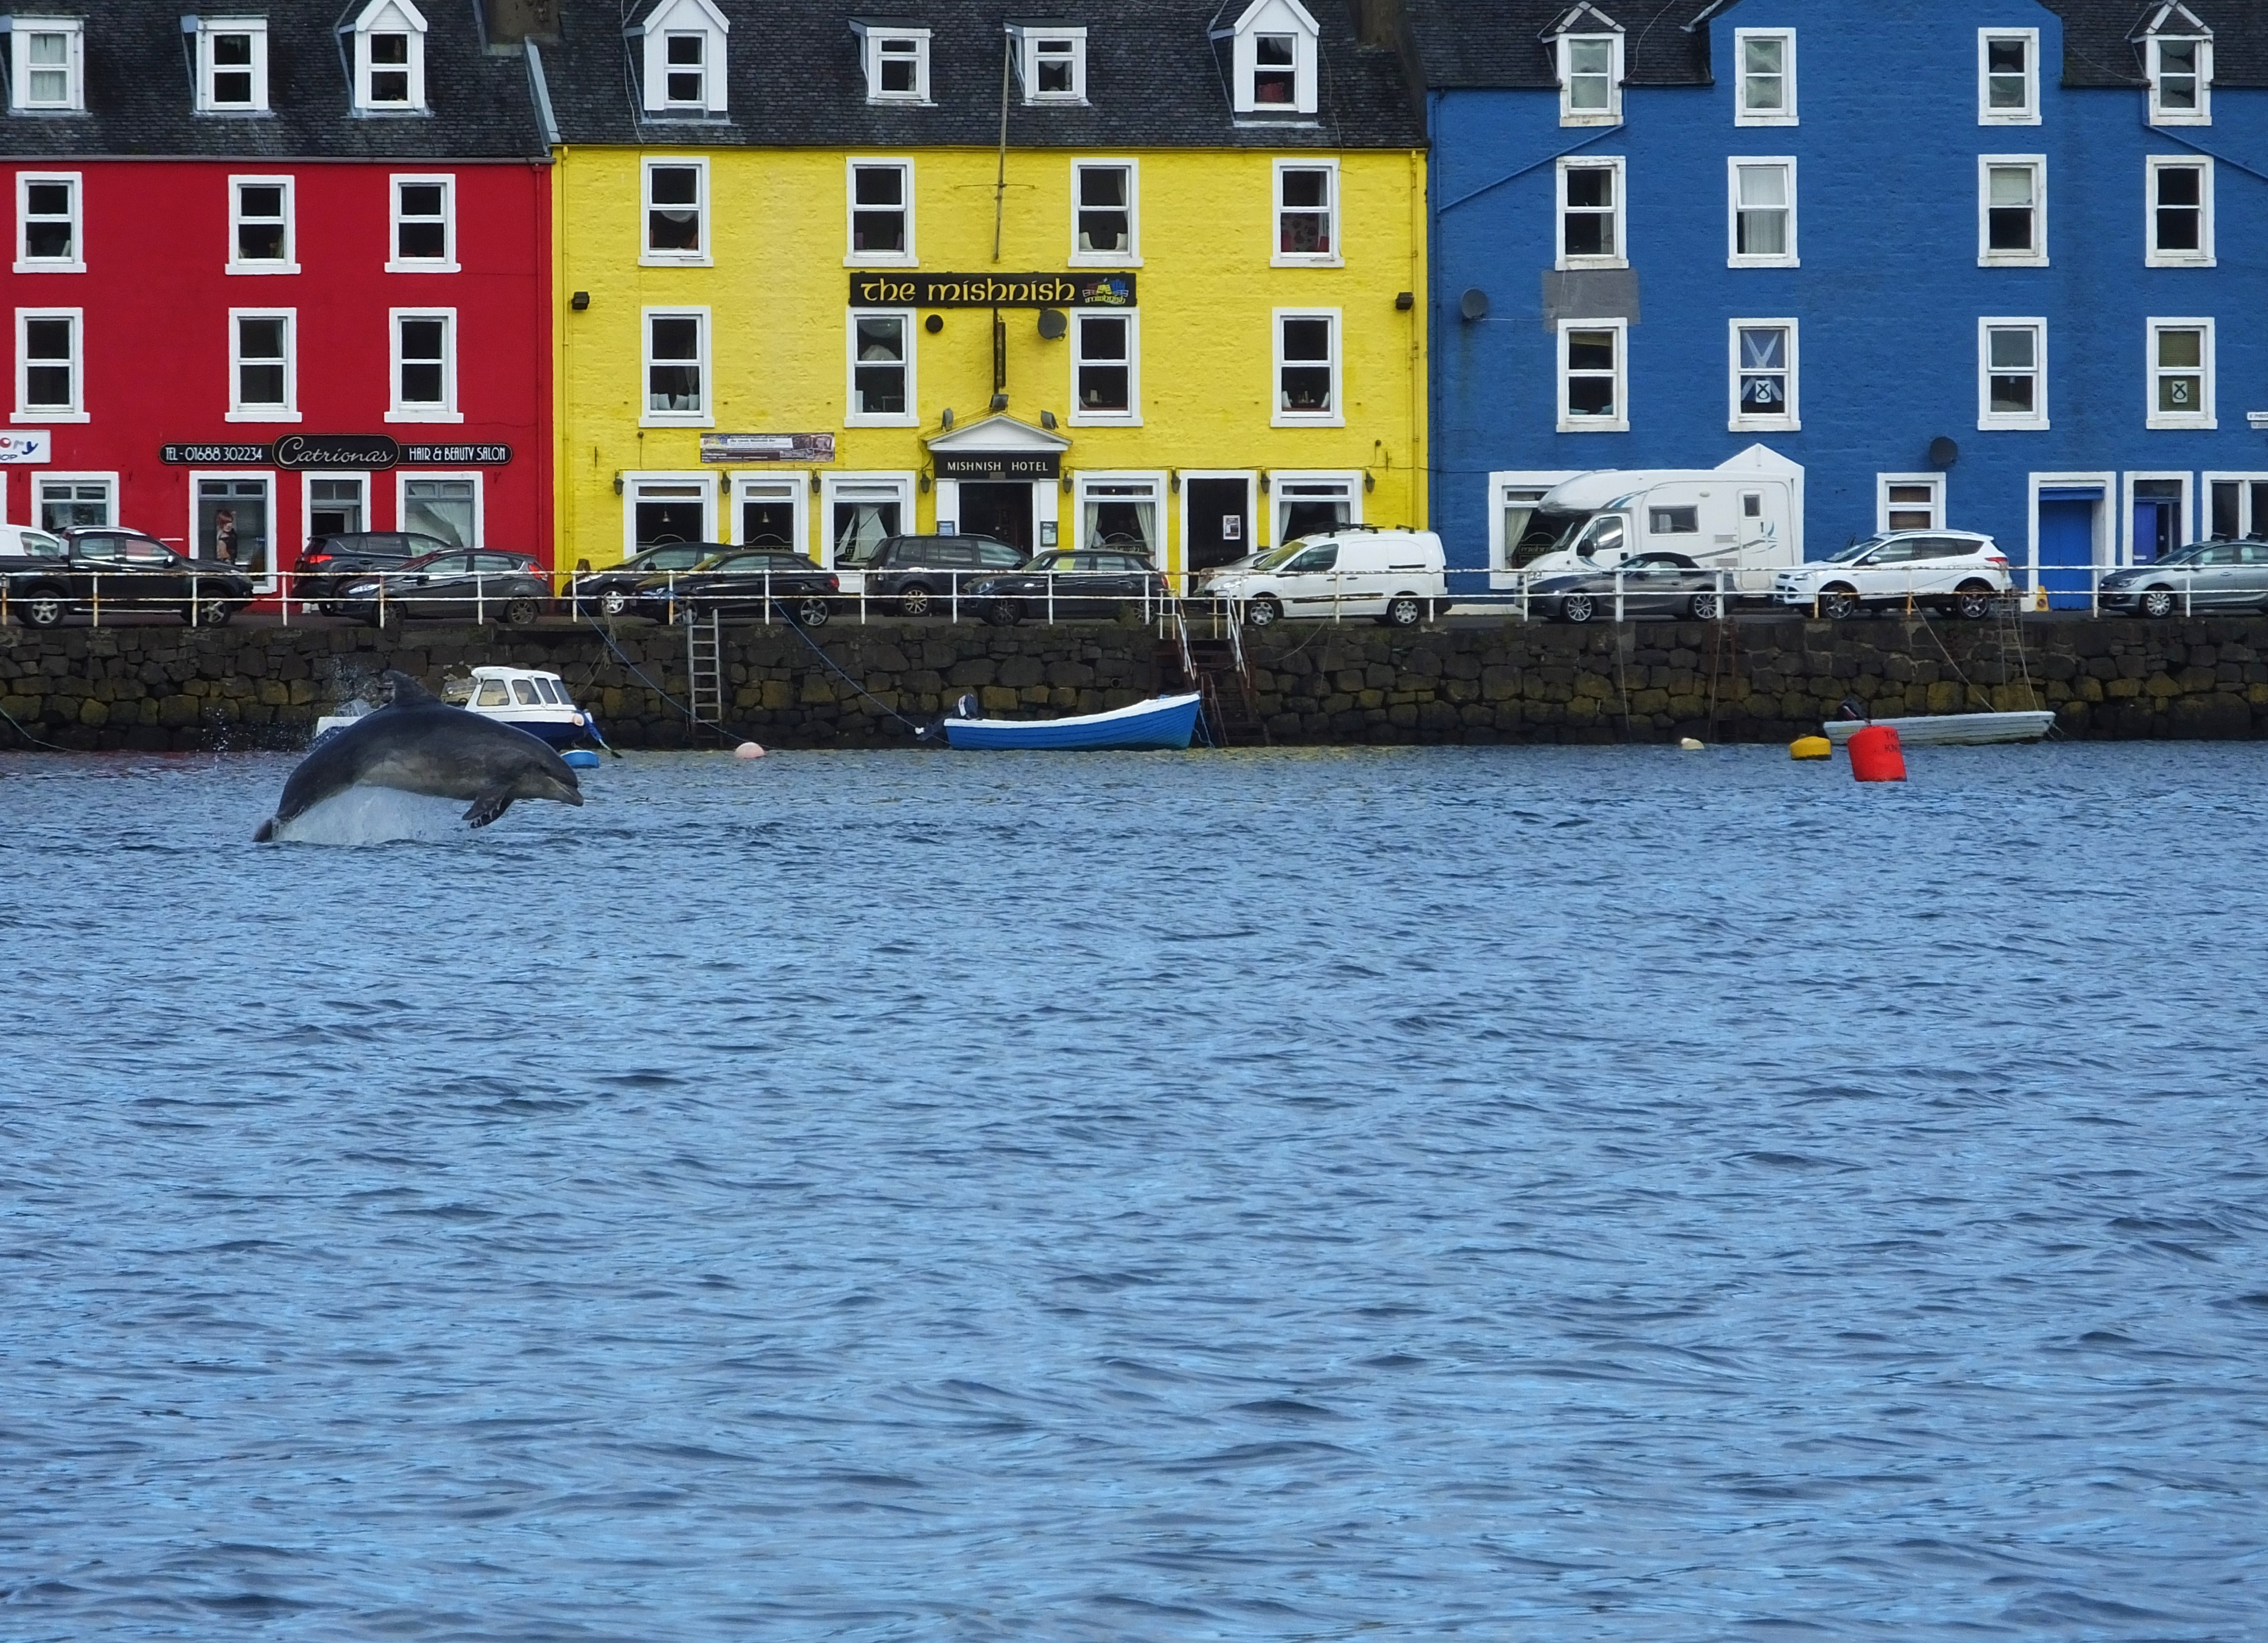 A dolphin leaping near Tobermory